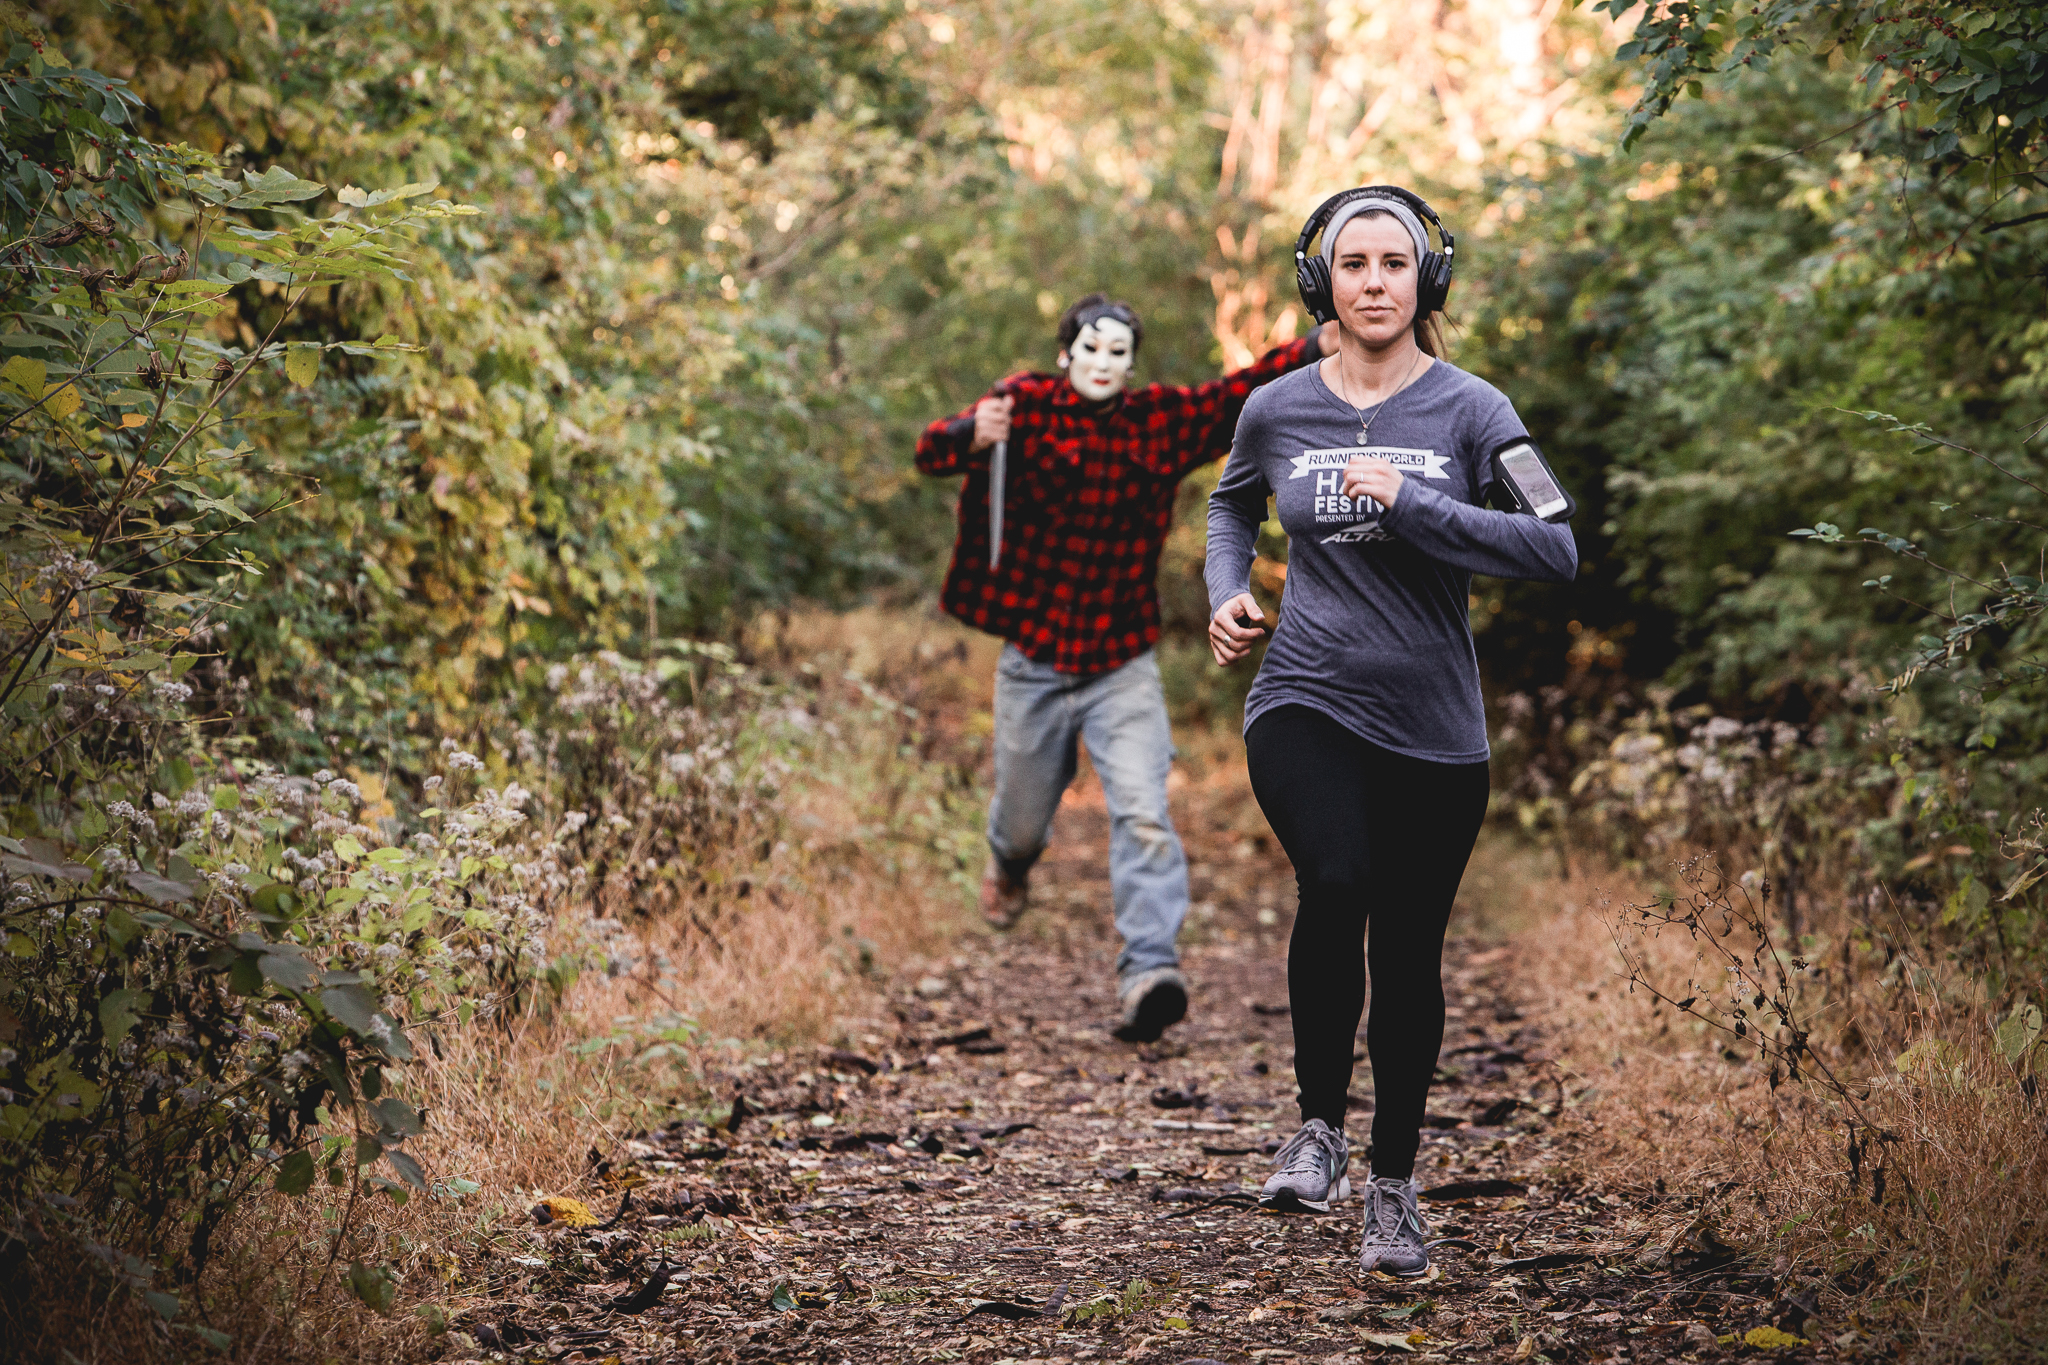 Have you ever ran in the woods with your headphones on? Do you ever look behind you?